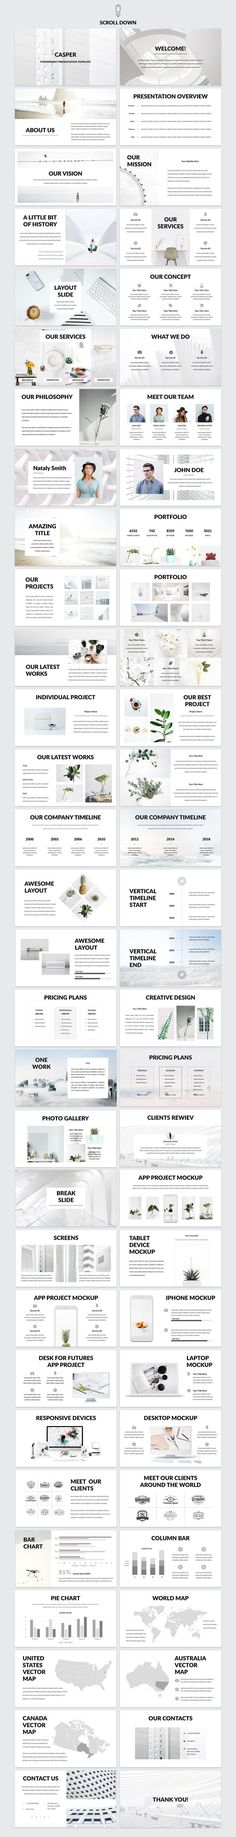 Casper - Powerpoint Template by Helga_Design on @creativemarket